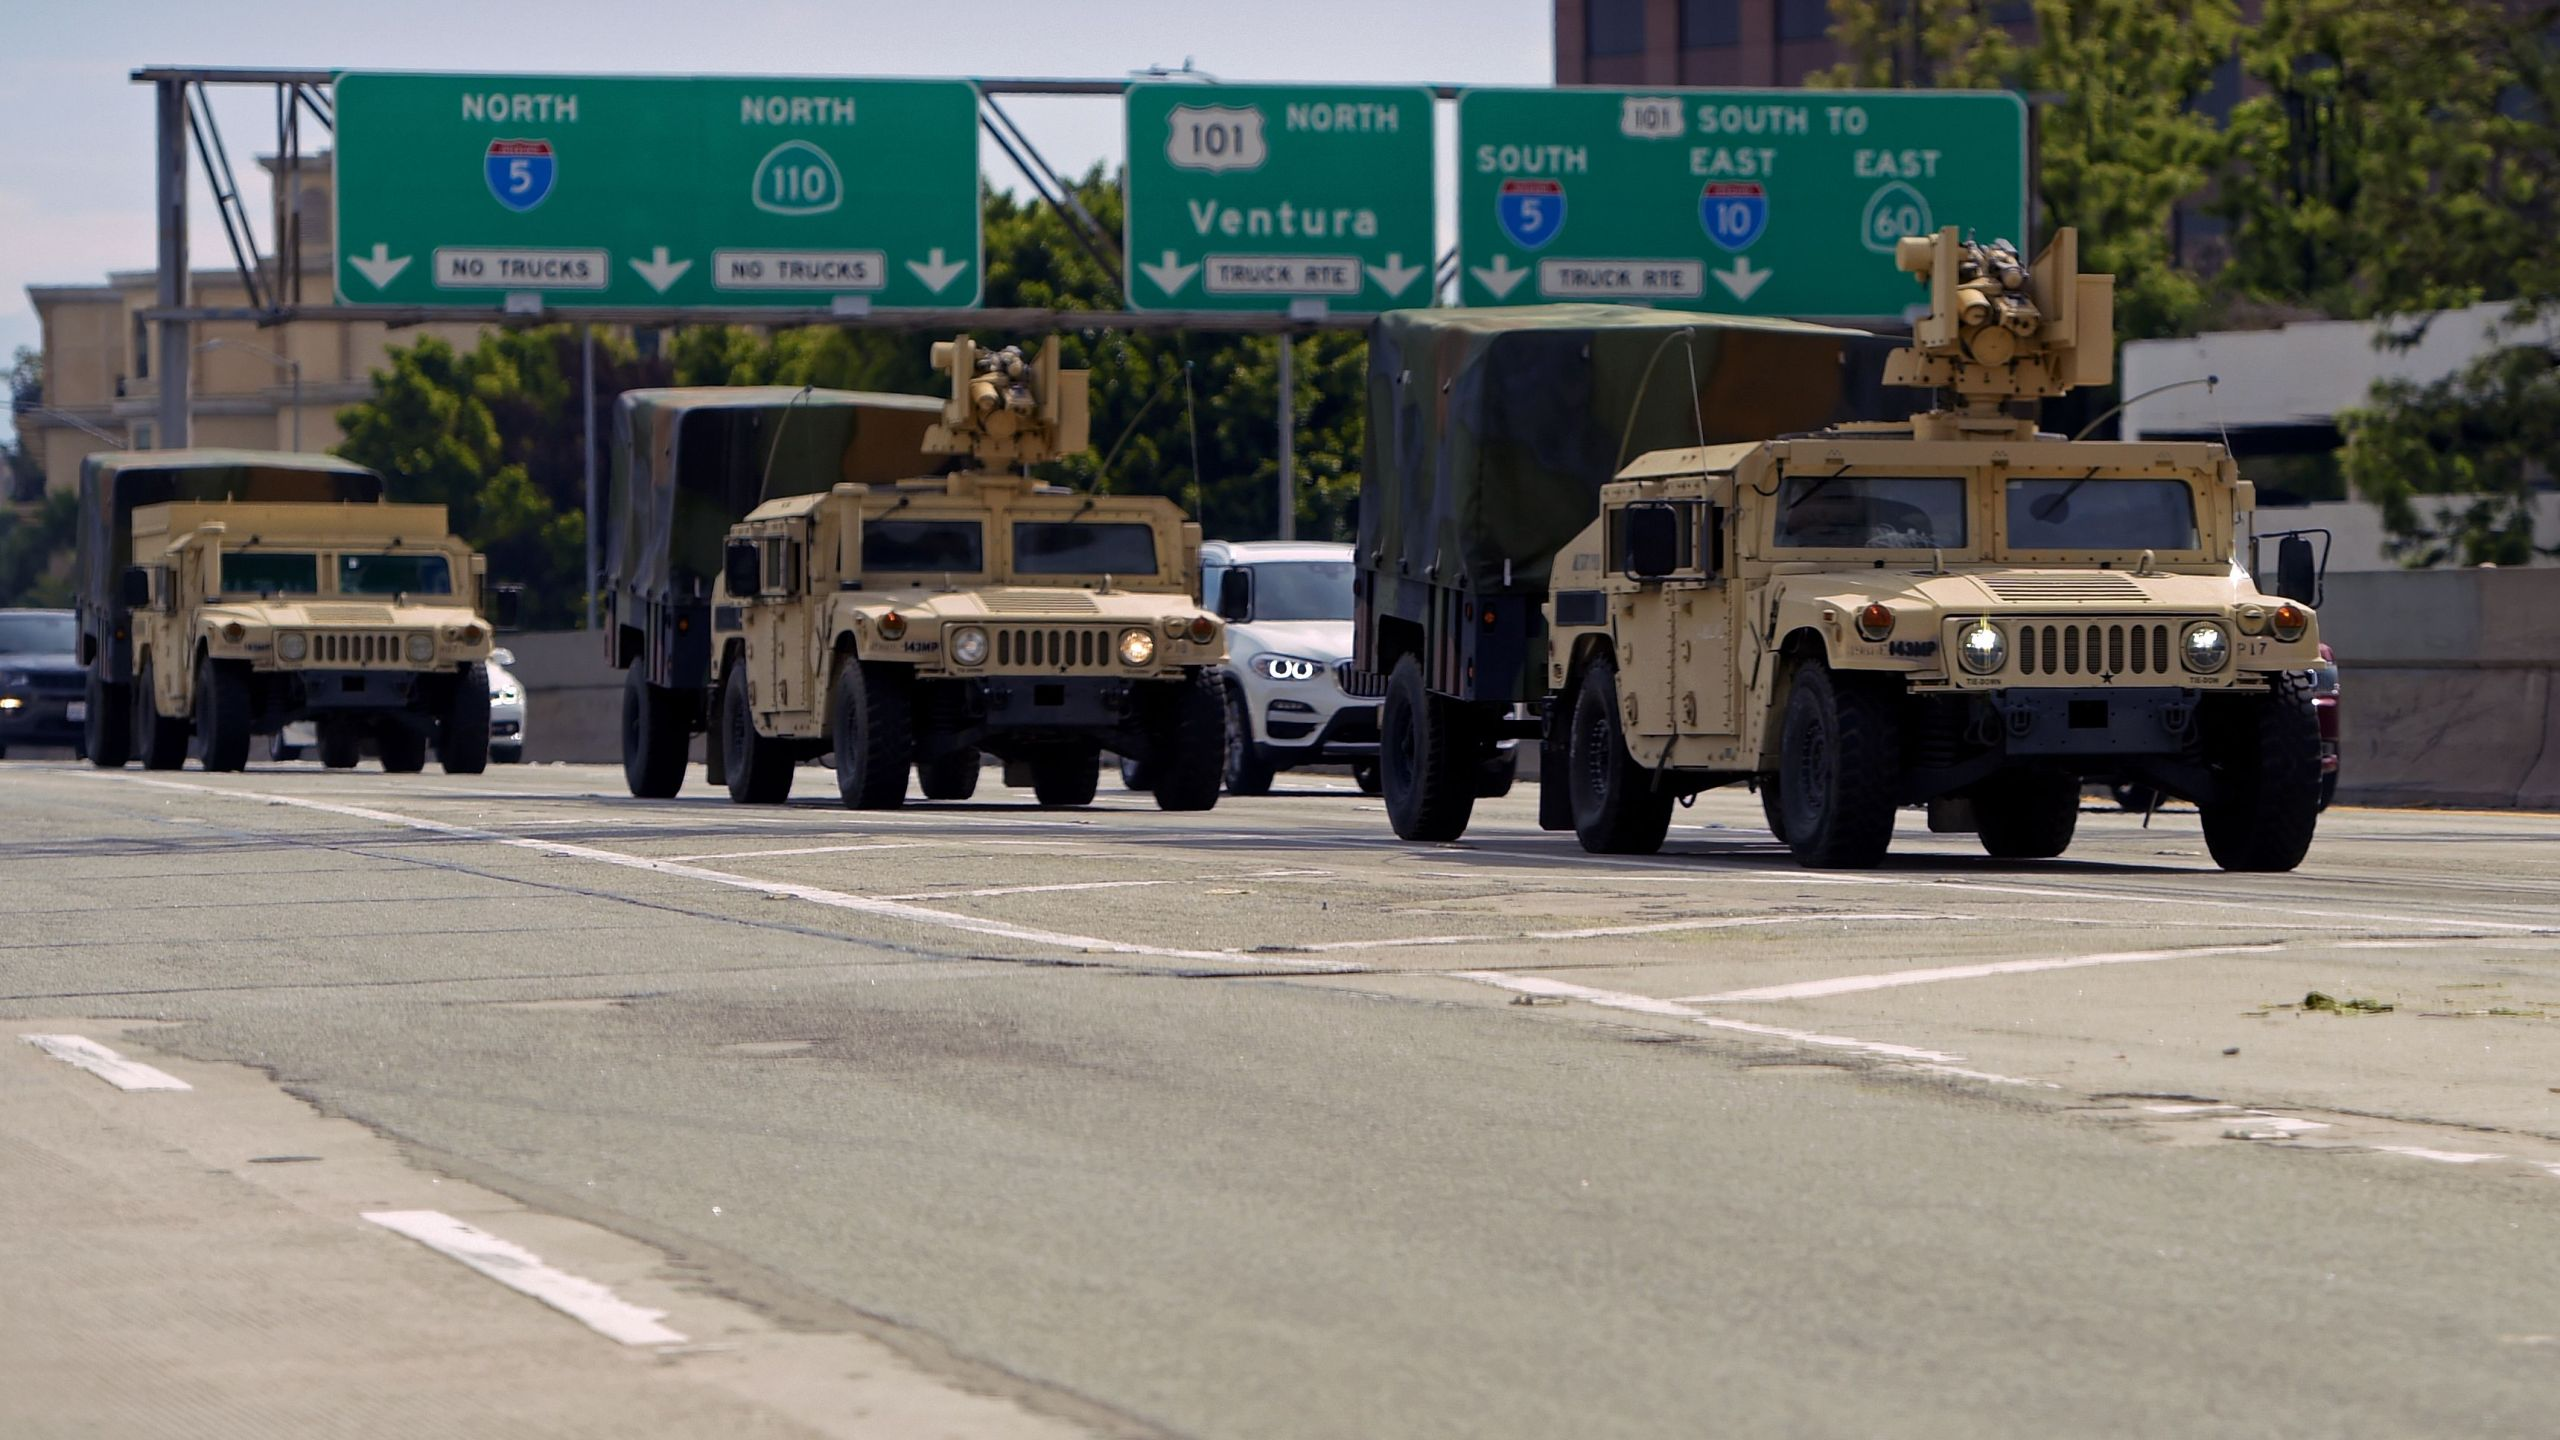 California National Guard armed vehicles are seen on the freeway as they patrol after demonstrators protested the death of George Floyd in Los Angeles on May 31, 2020. (Agustin Paullier / AFP / Getty Images)